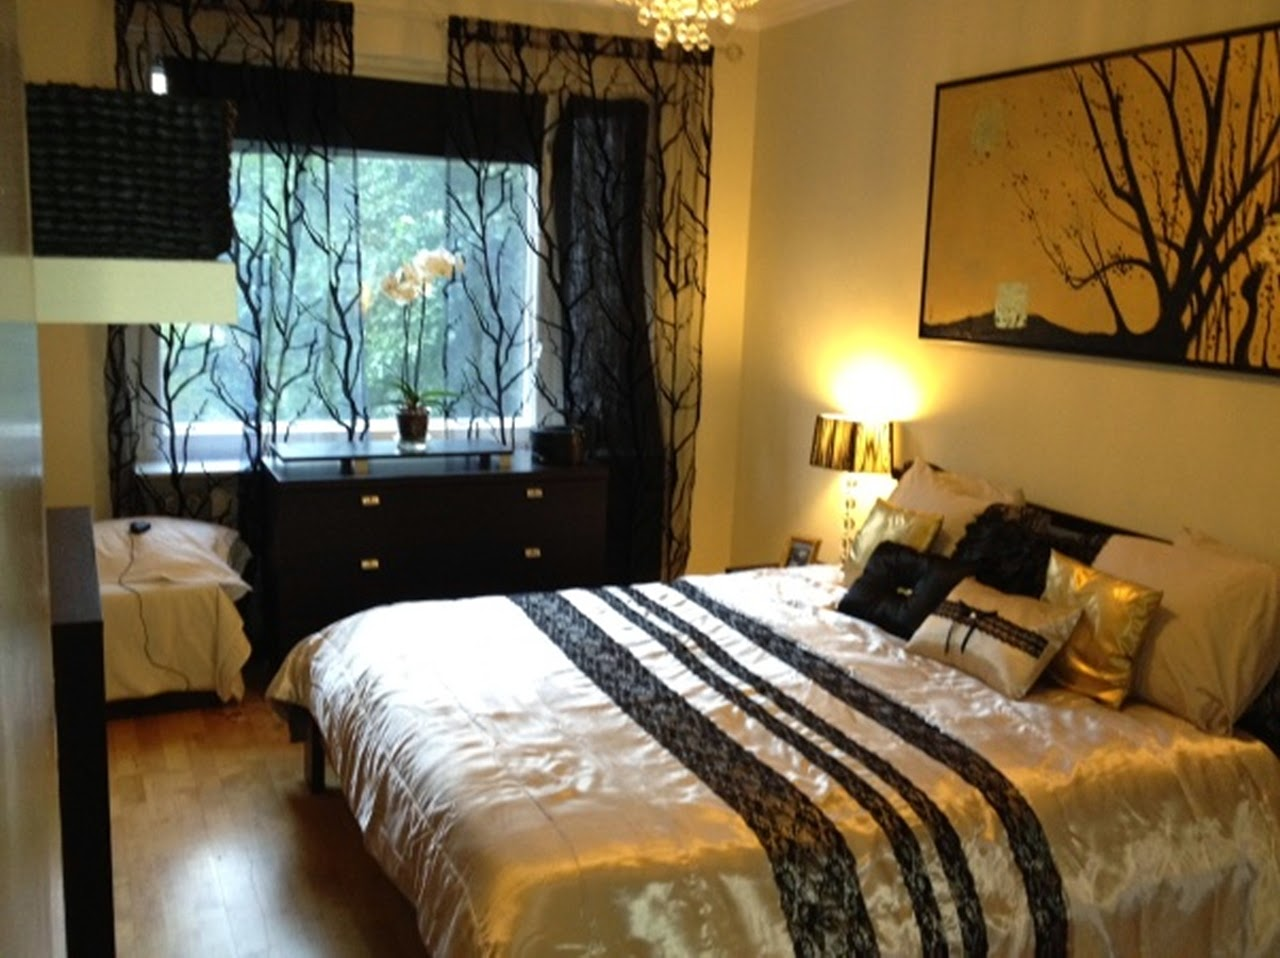 Jazzy's Interior Decorating: Gold, Black and White Bedrooms